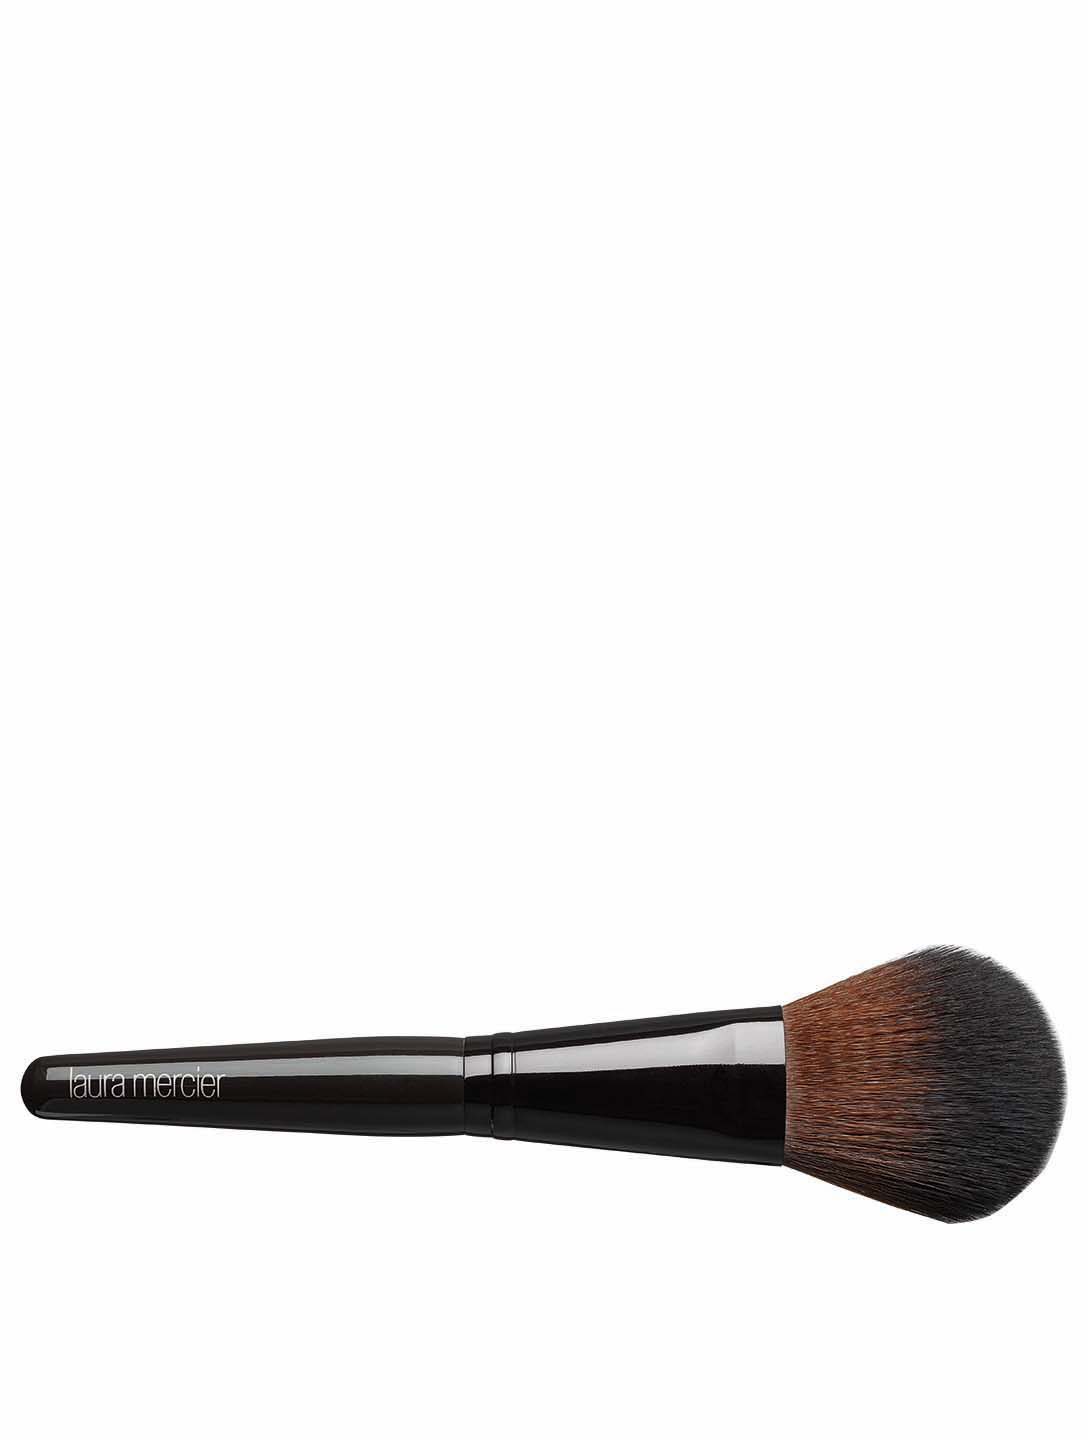 LAURA MERCIER Powder Brush Beauty